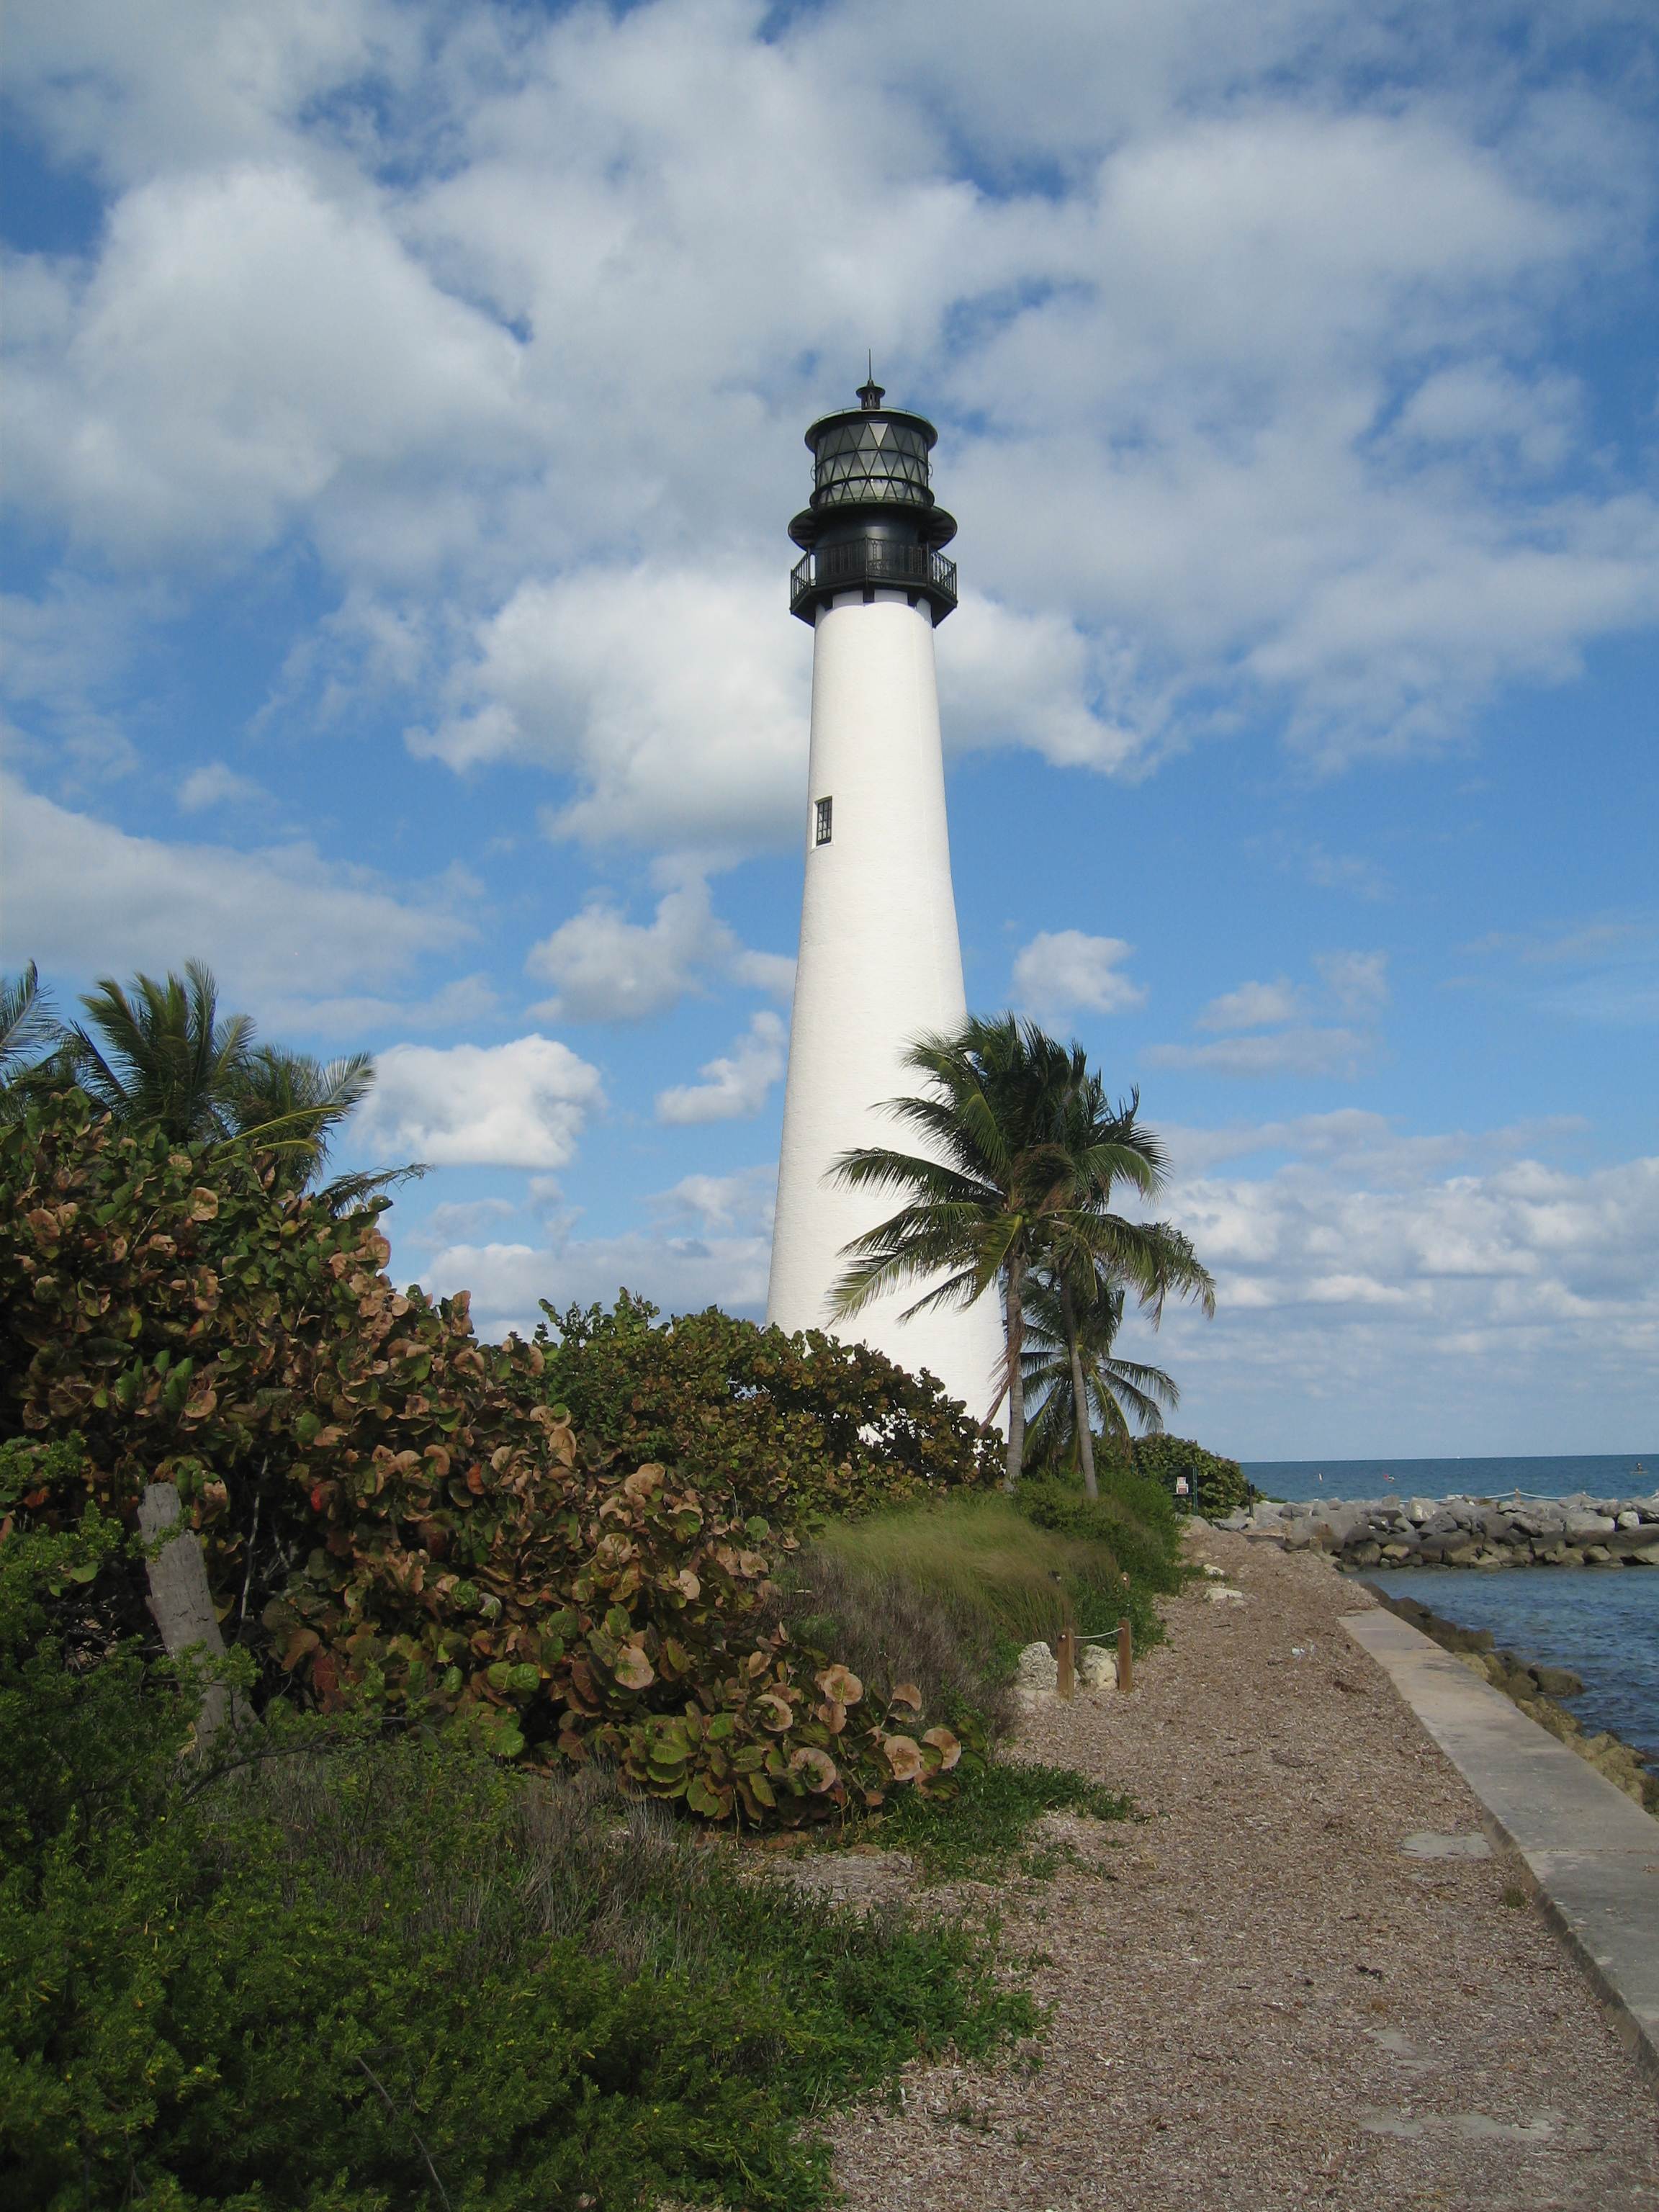 File:Cape Florida Lighthouse 001.jpg - Wikimedia Commons